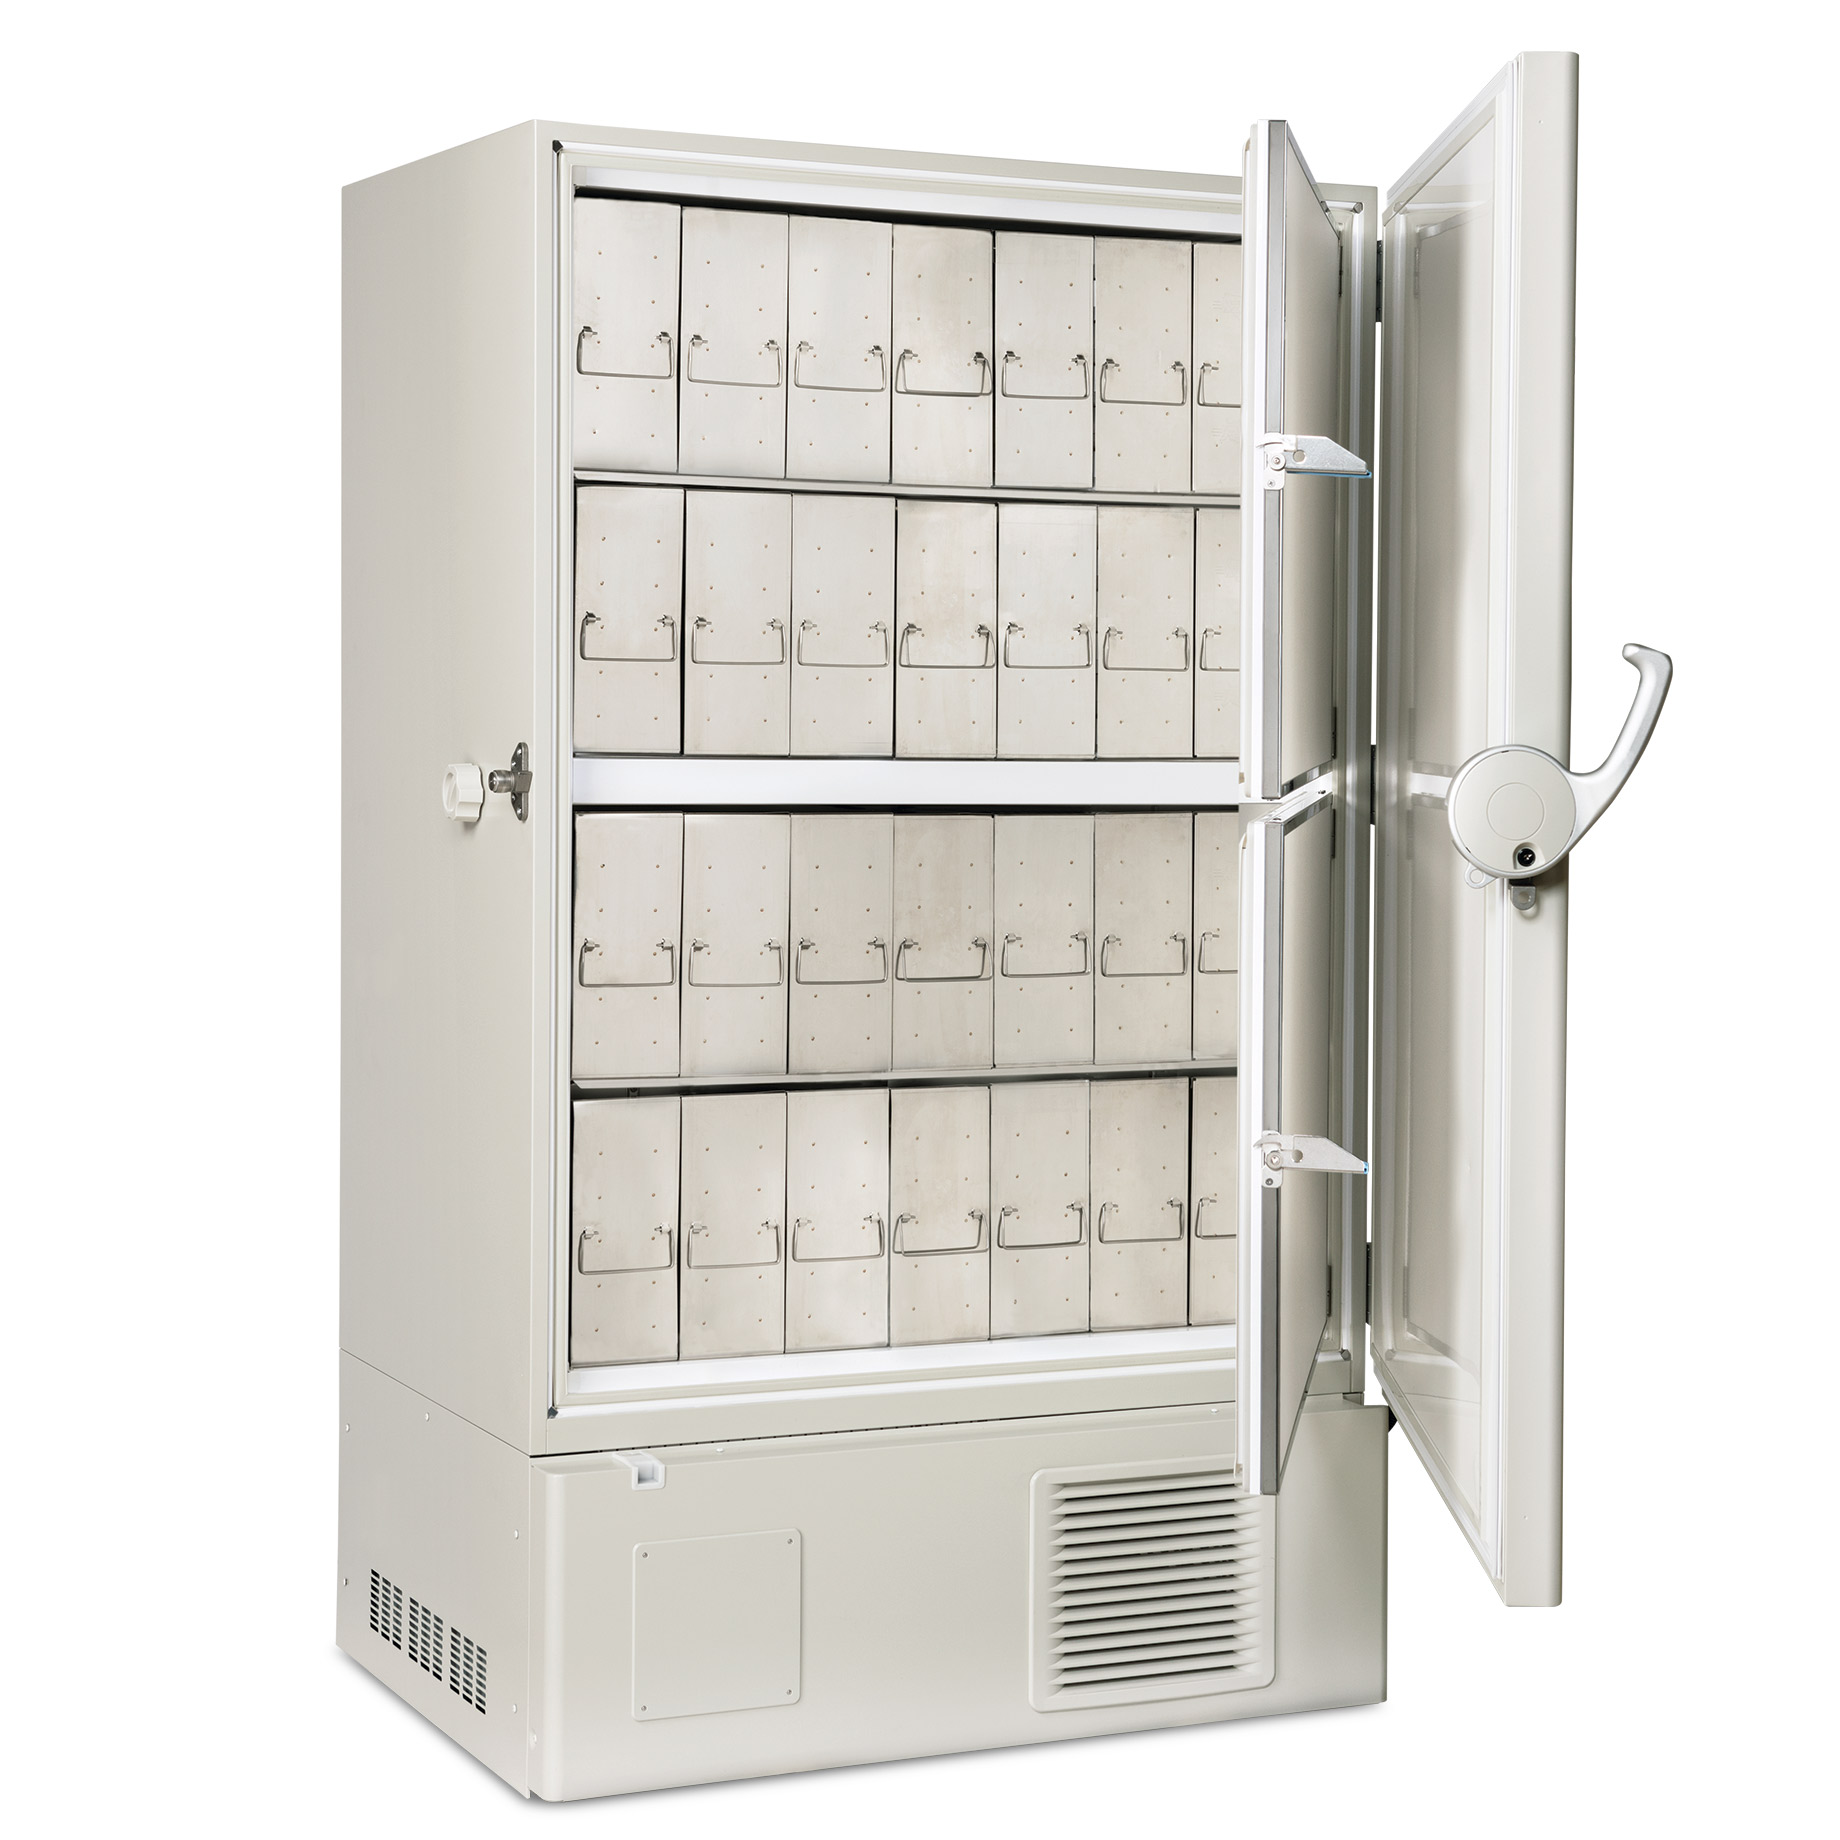 long term storage freezer MDF-DU900VC